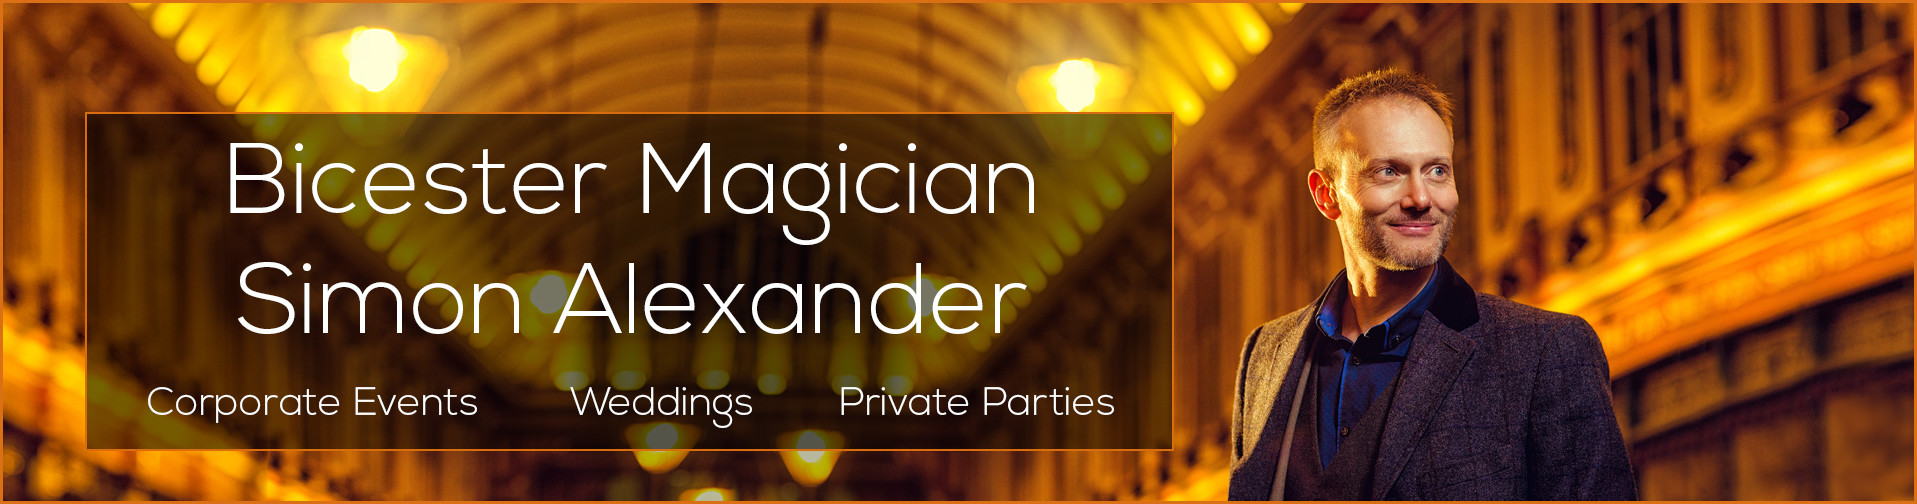 Magician in Bicester banner